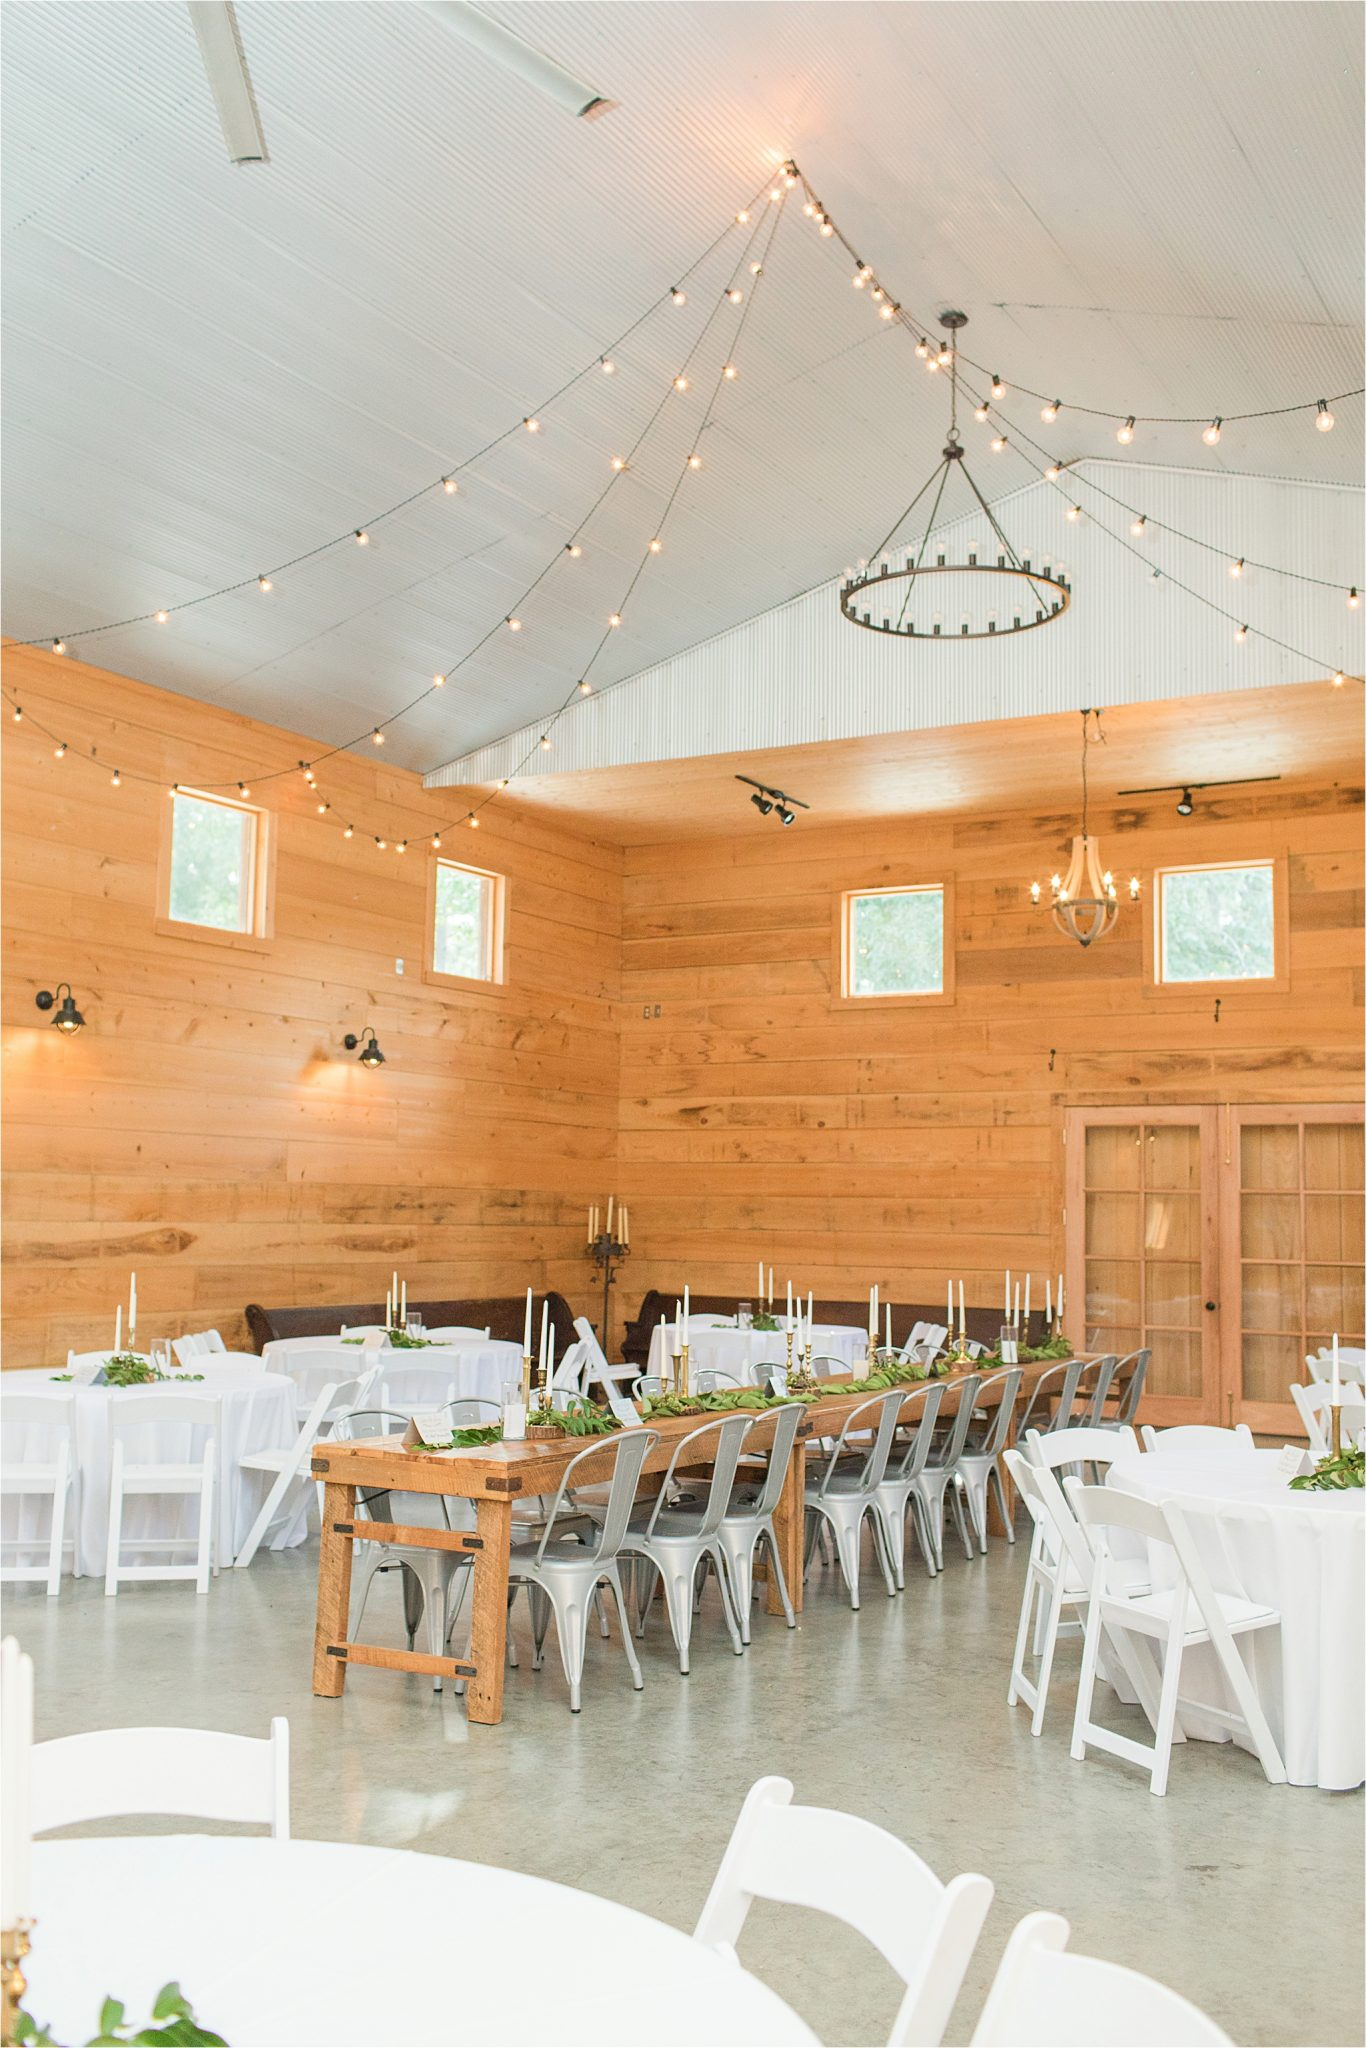 wedding-reception-alabama-venue-barn-farm-tables-metal-chairs-candle-centerpieces-hanging-lights